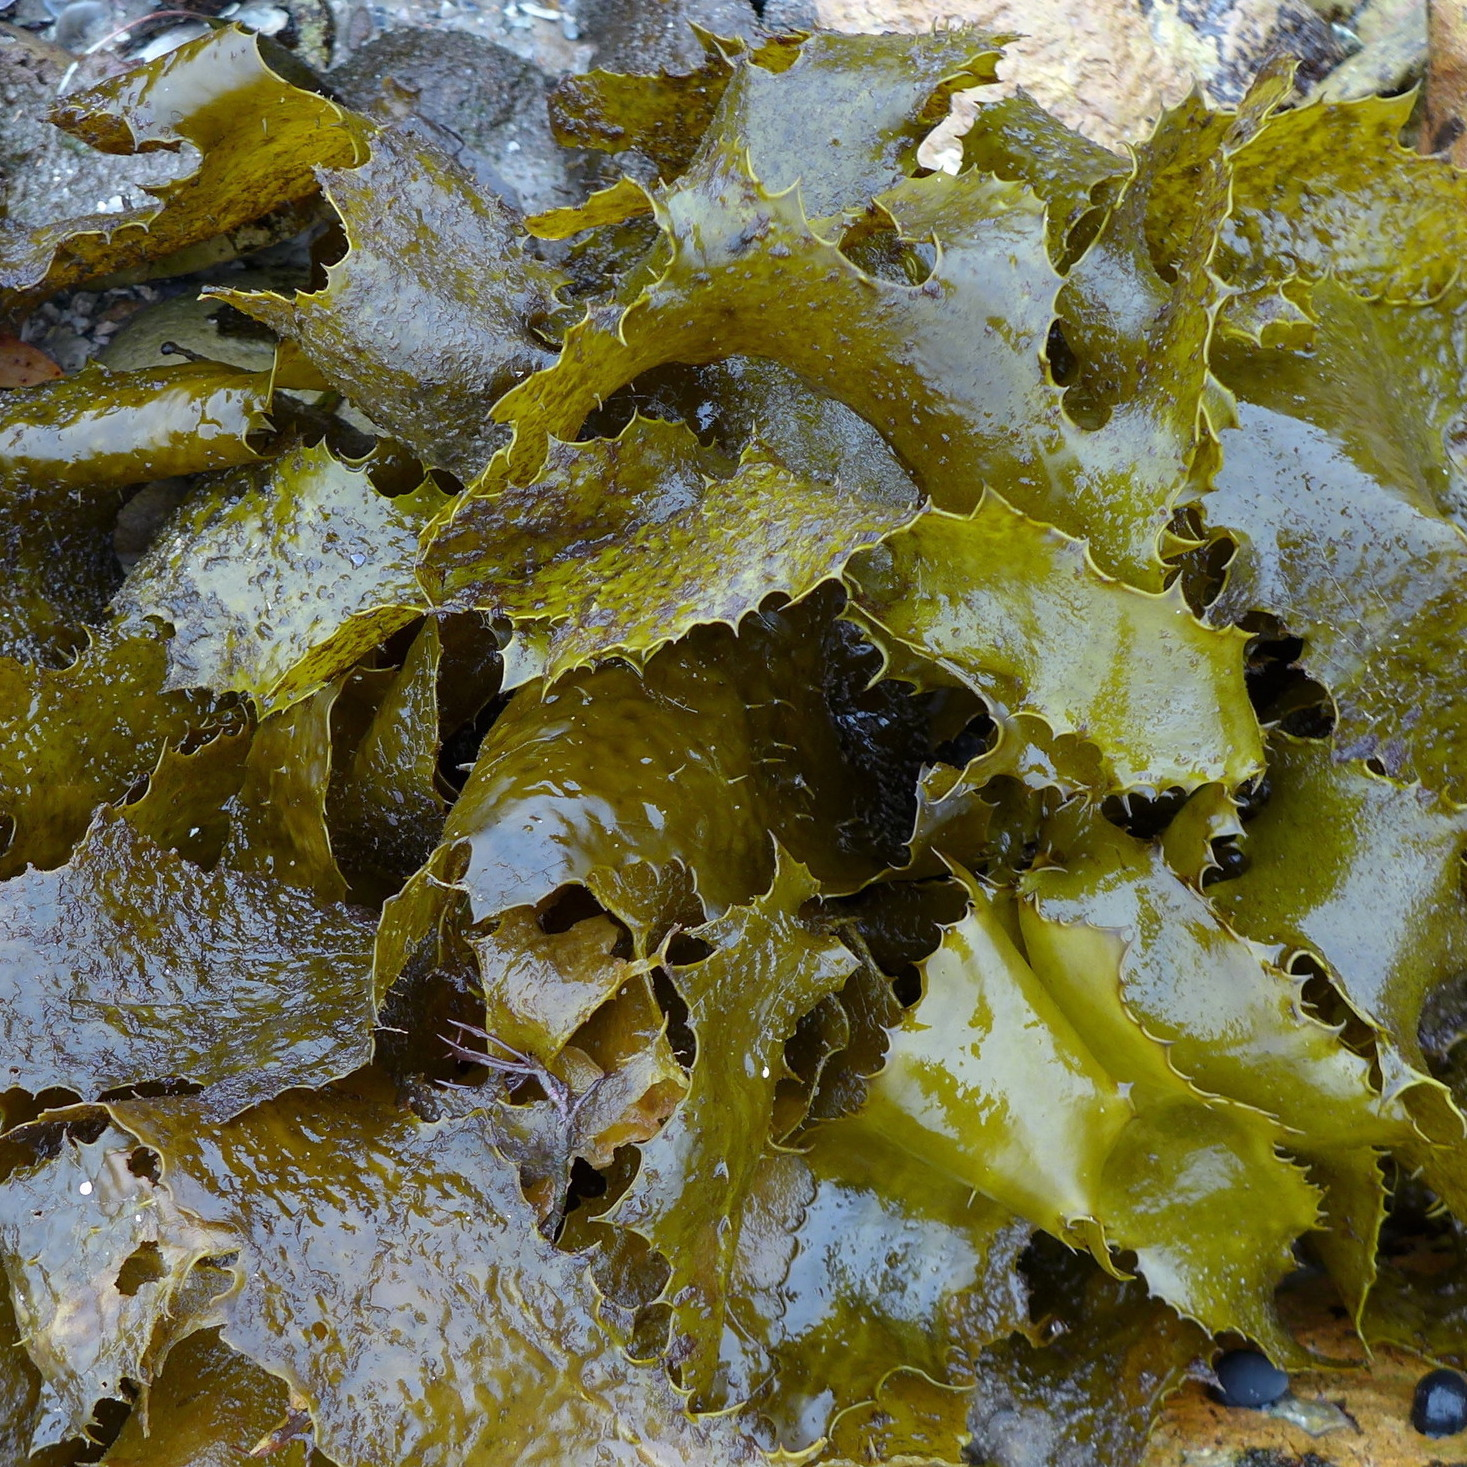 - Golden kelpEcklonia radiataAvailable all year around this common seaweed has lots of potential. It goes bright emerald green when in boiling water and pickles very well.A salty addition to your repertoire!Available in bulk with one week notice.